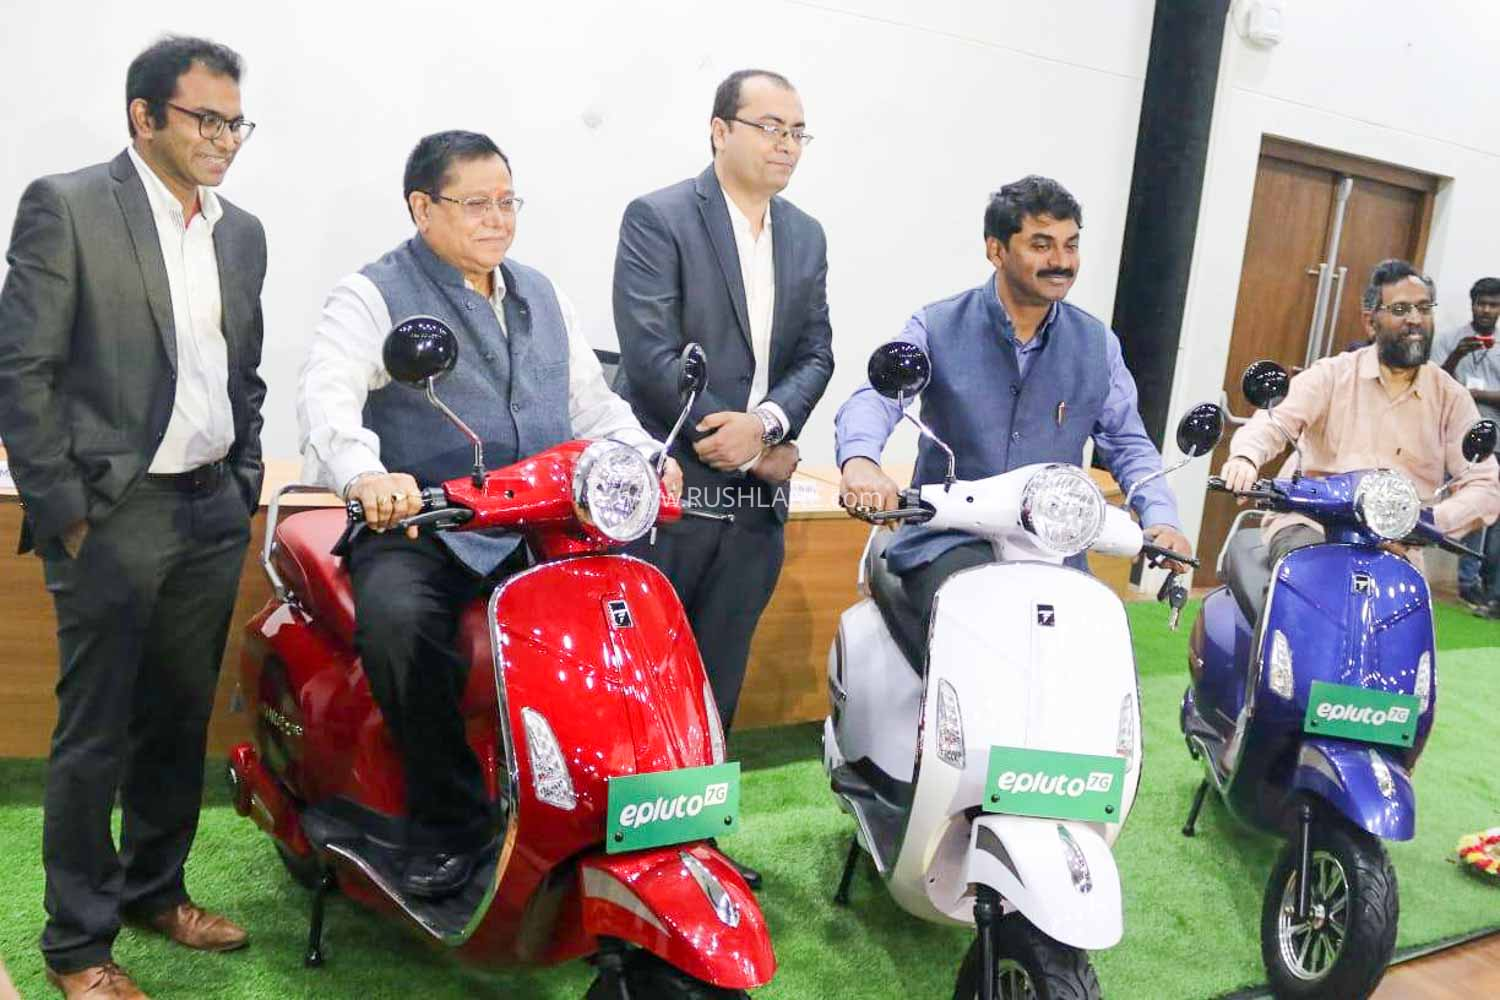 PureEV ePluto electric scooter launch at IIT Hyderabad campus.